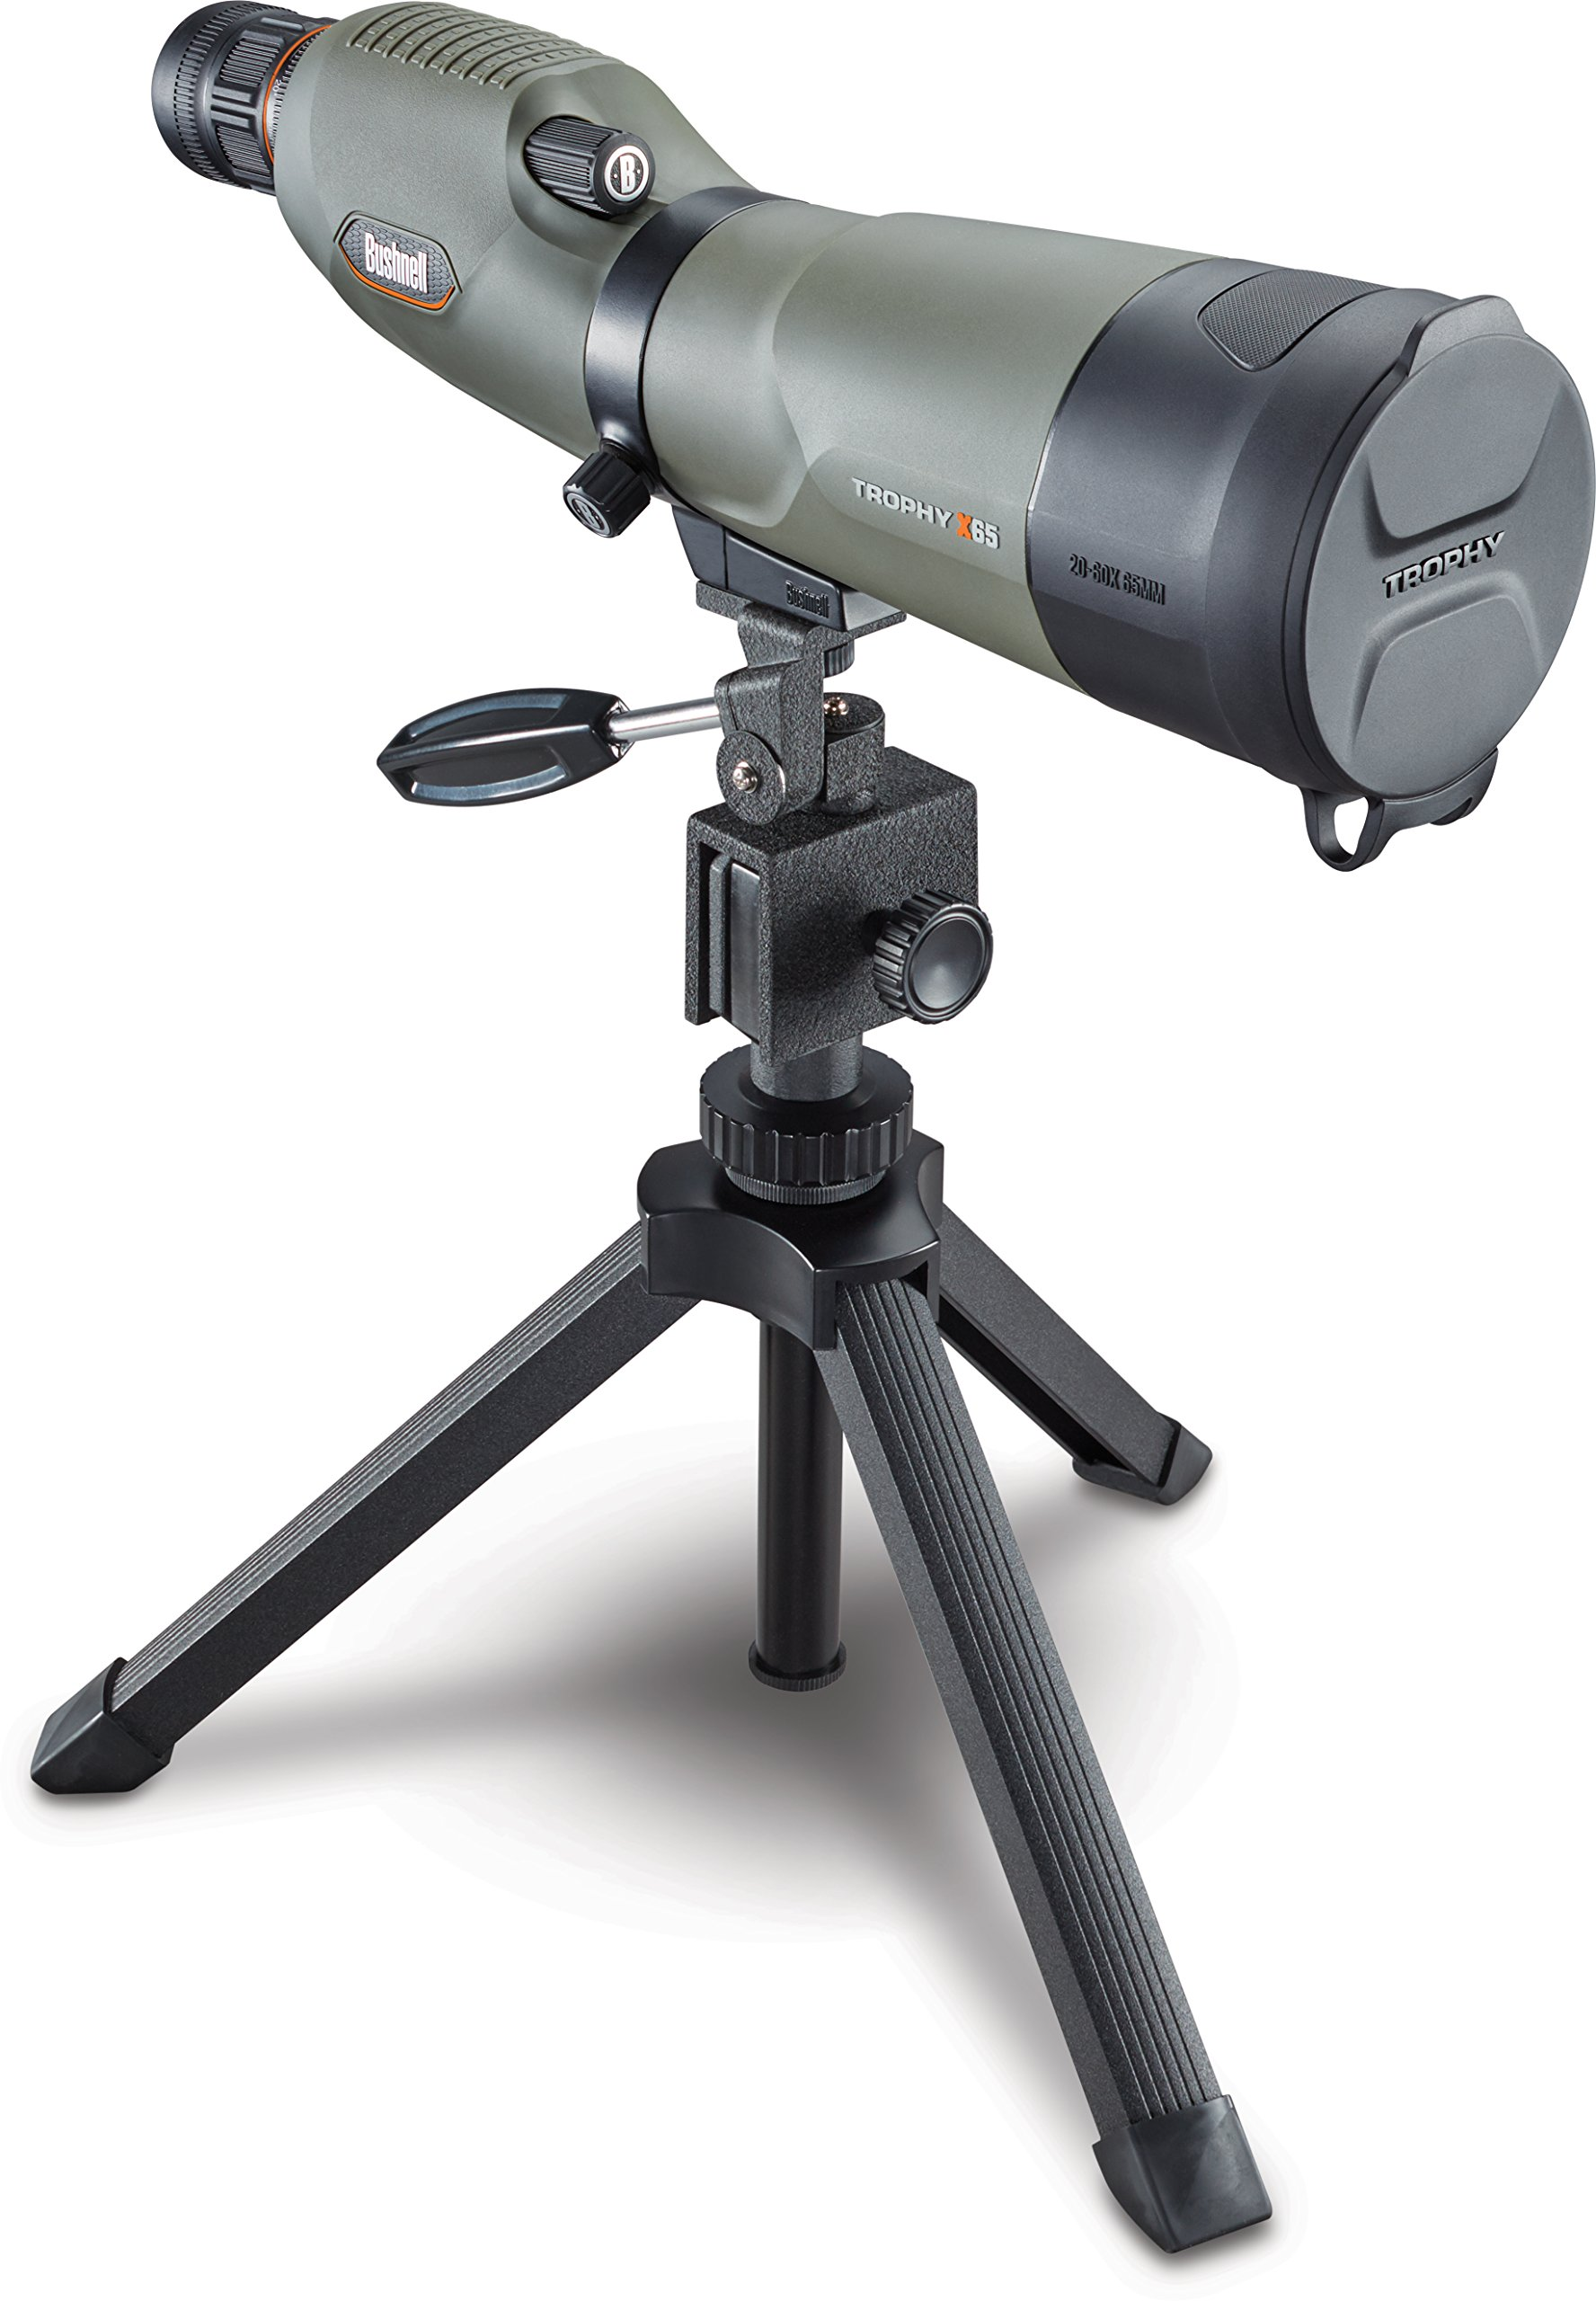 Bushnell Trophy Xtreme Spotting Scope, Green, 20-60 x 65mm by Bushnell (Image #2)